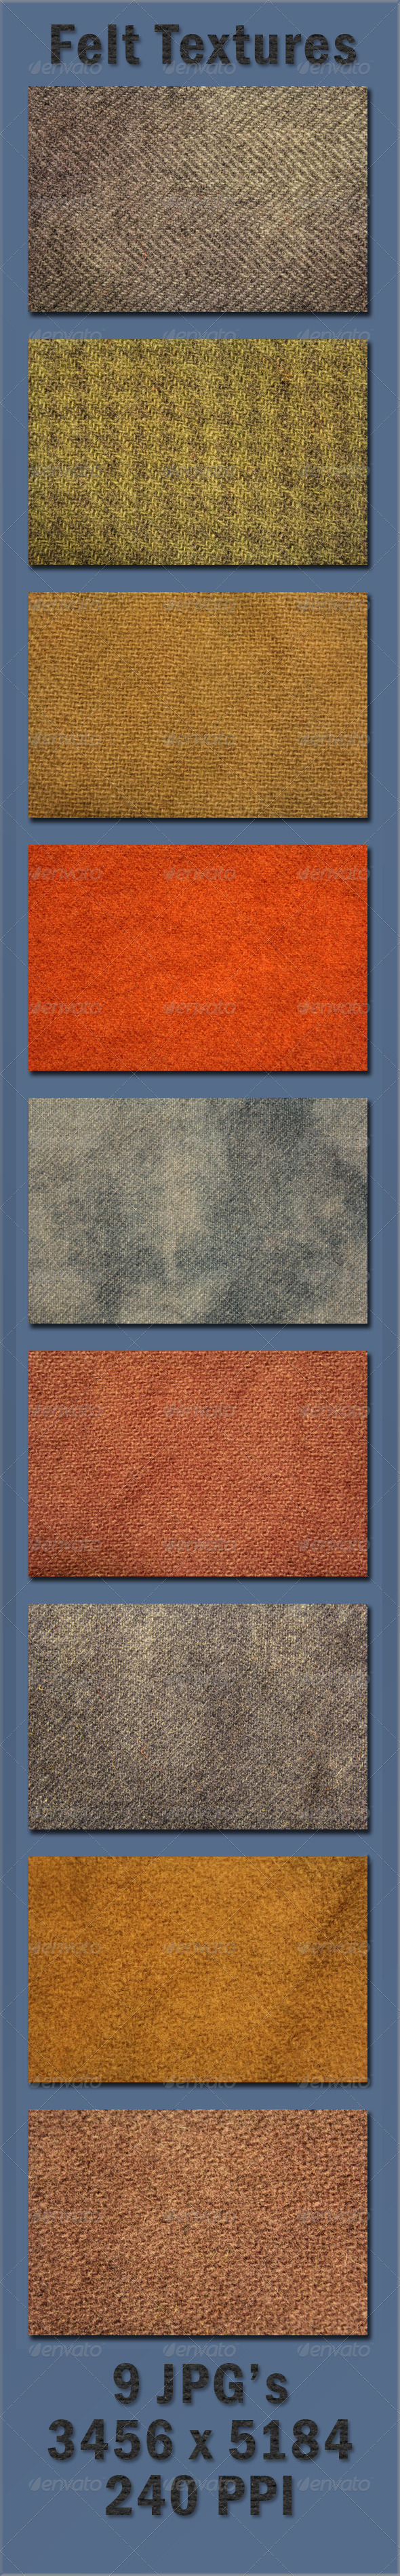 GraphicRiver Felt Wool Textures 4086857